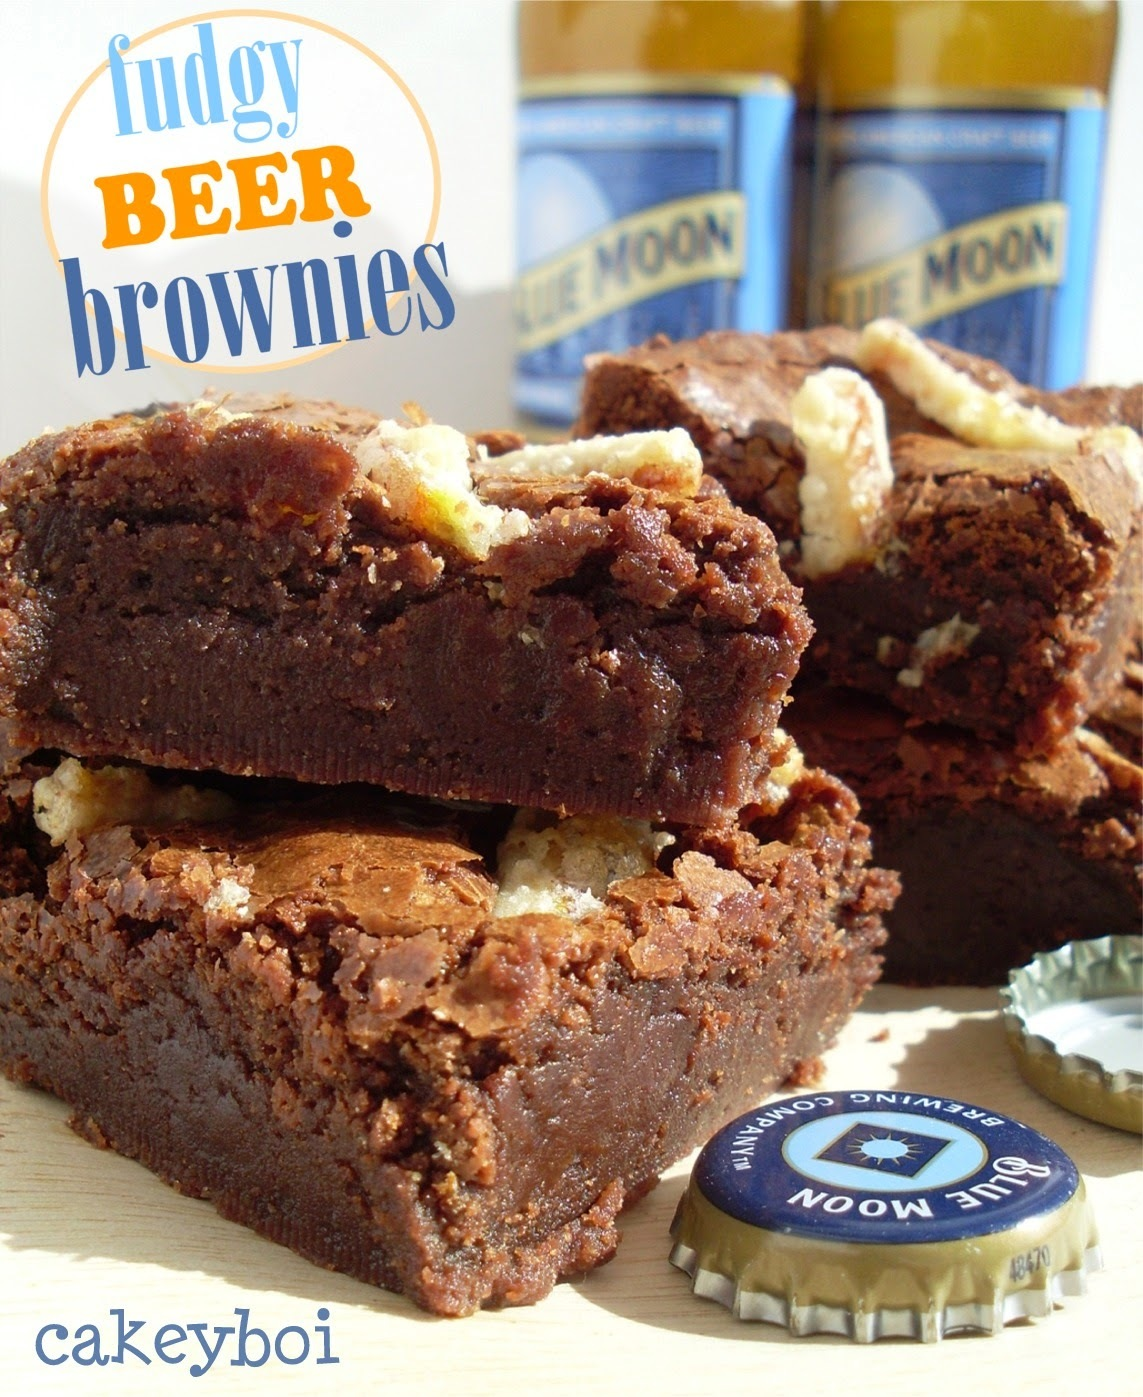 Fudgy Beer Brownies